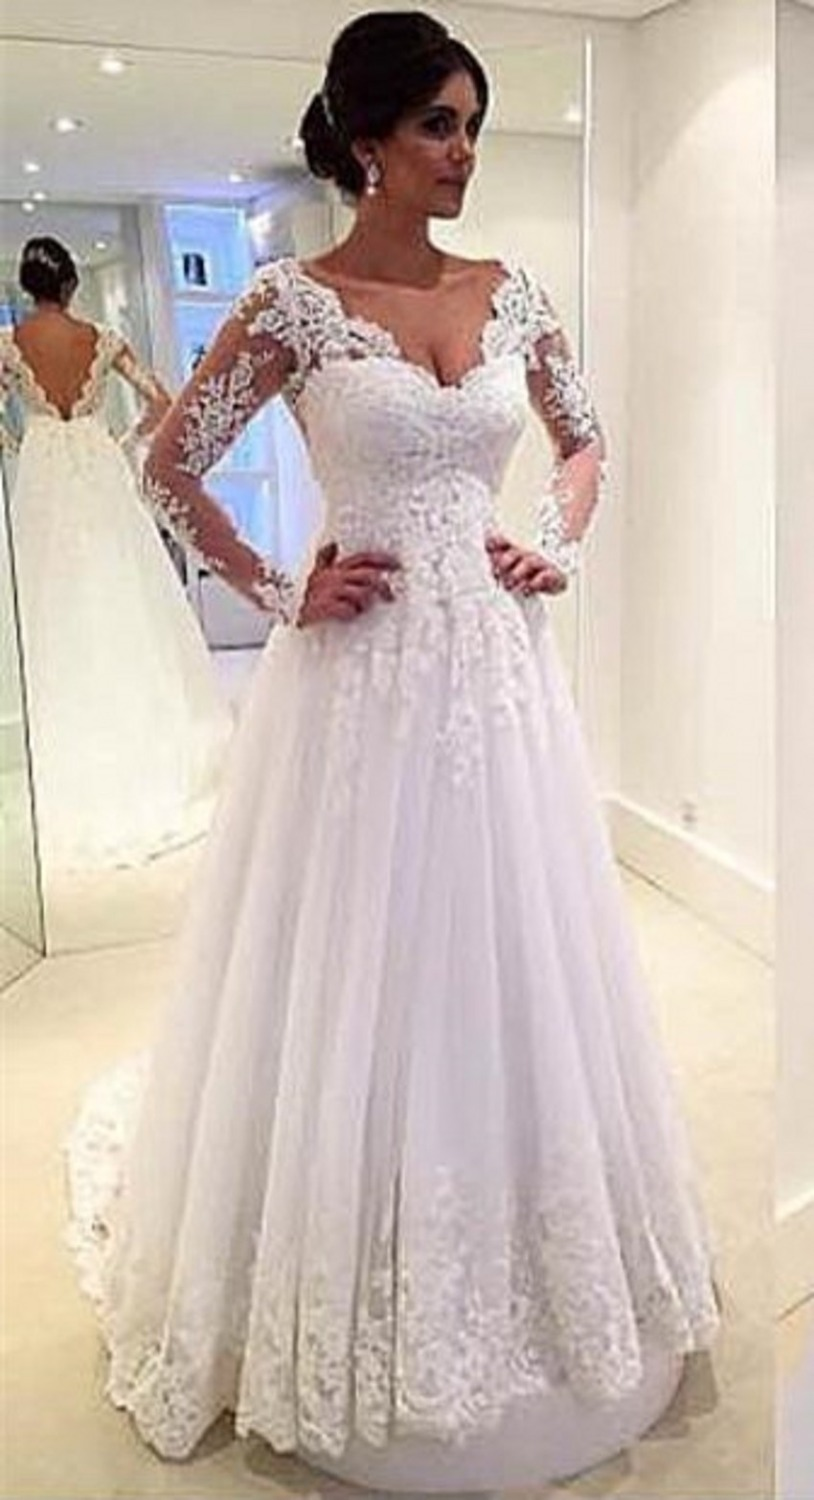 63670a4a61f587 New Style White Wedding Dress Lace Long Sleeve Sexy Backless Bride